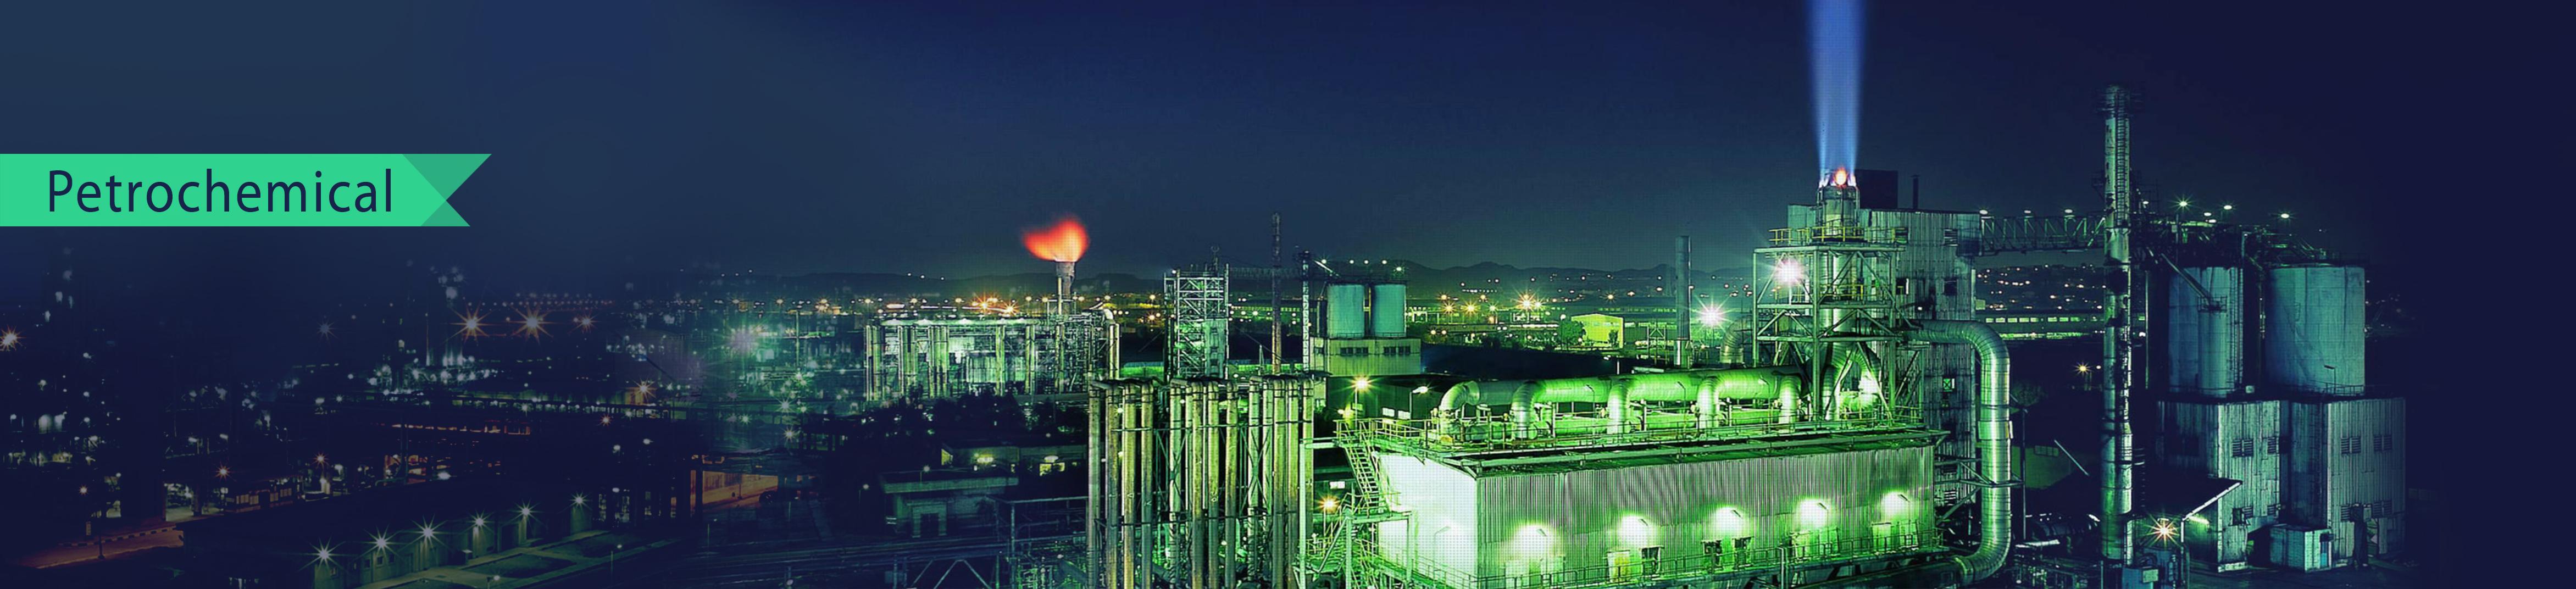 Petrochemical